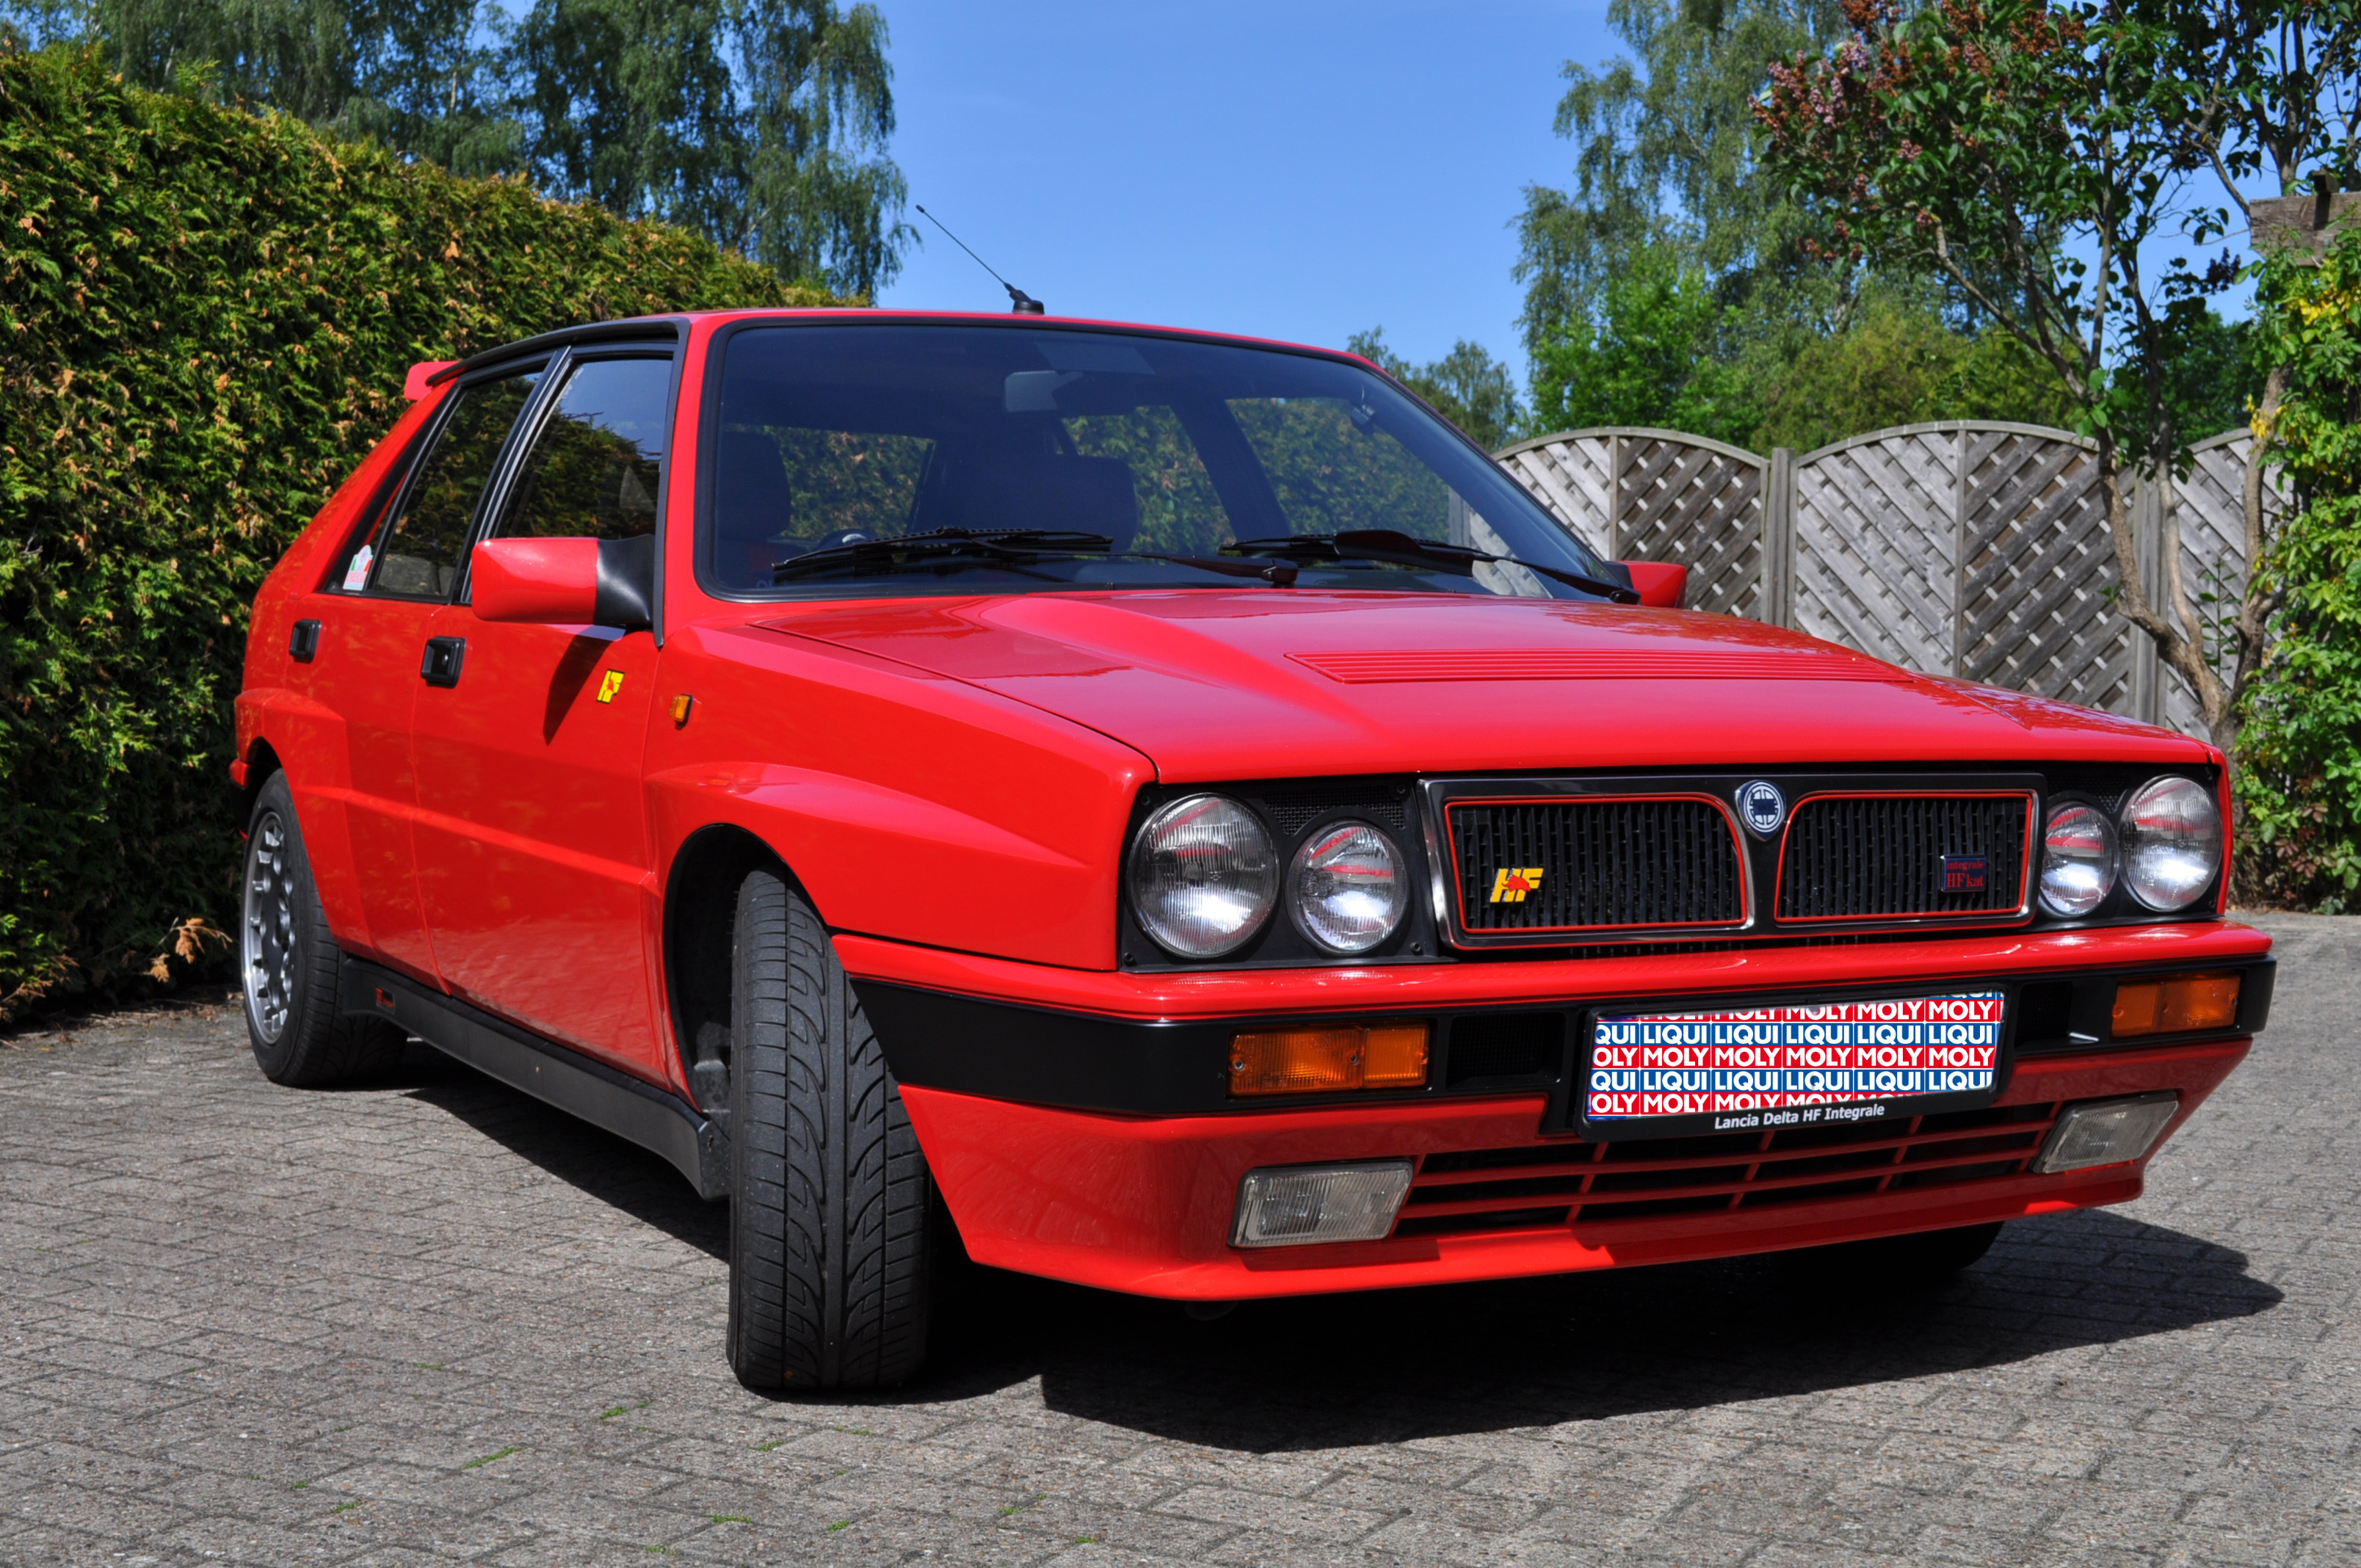 Lancia Delta HF Integrale front